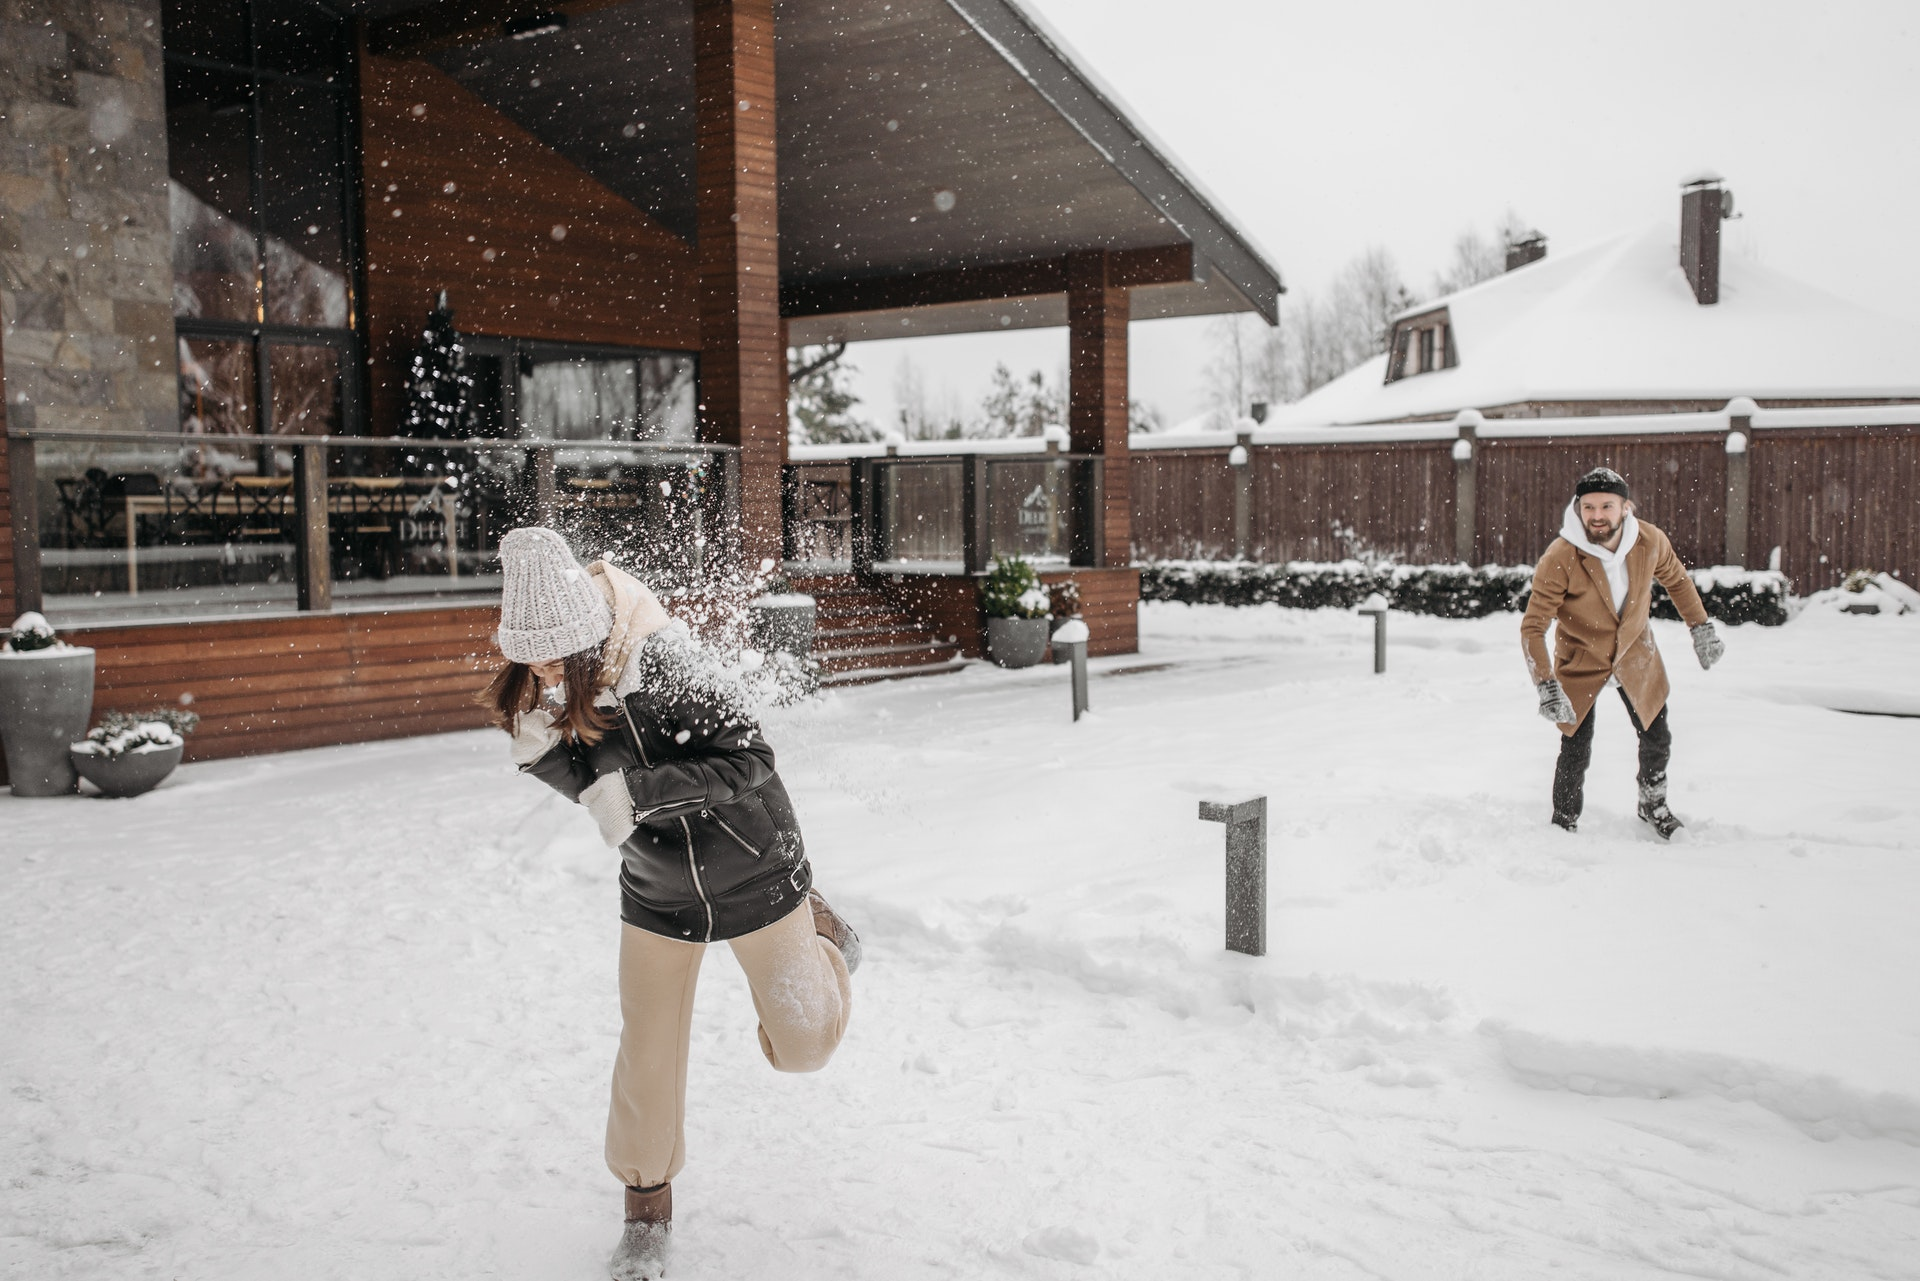 5 Exciting Winter Activities - with a Twist